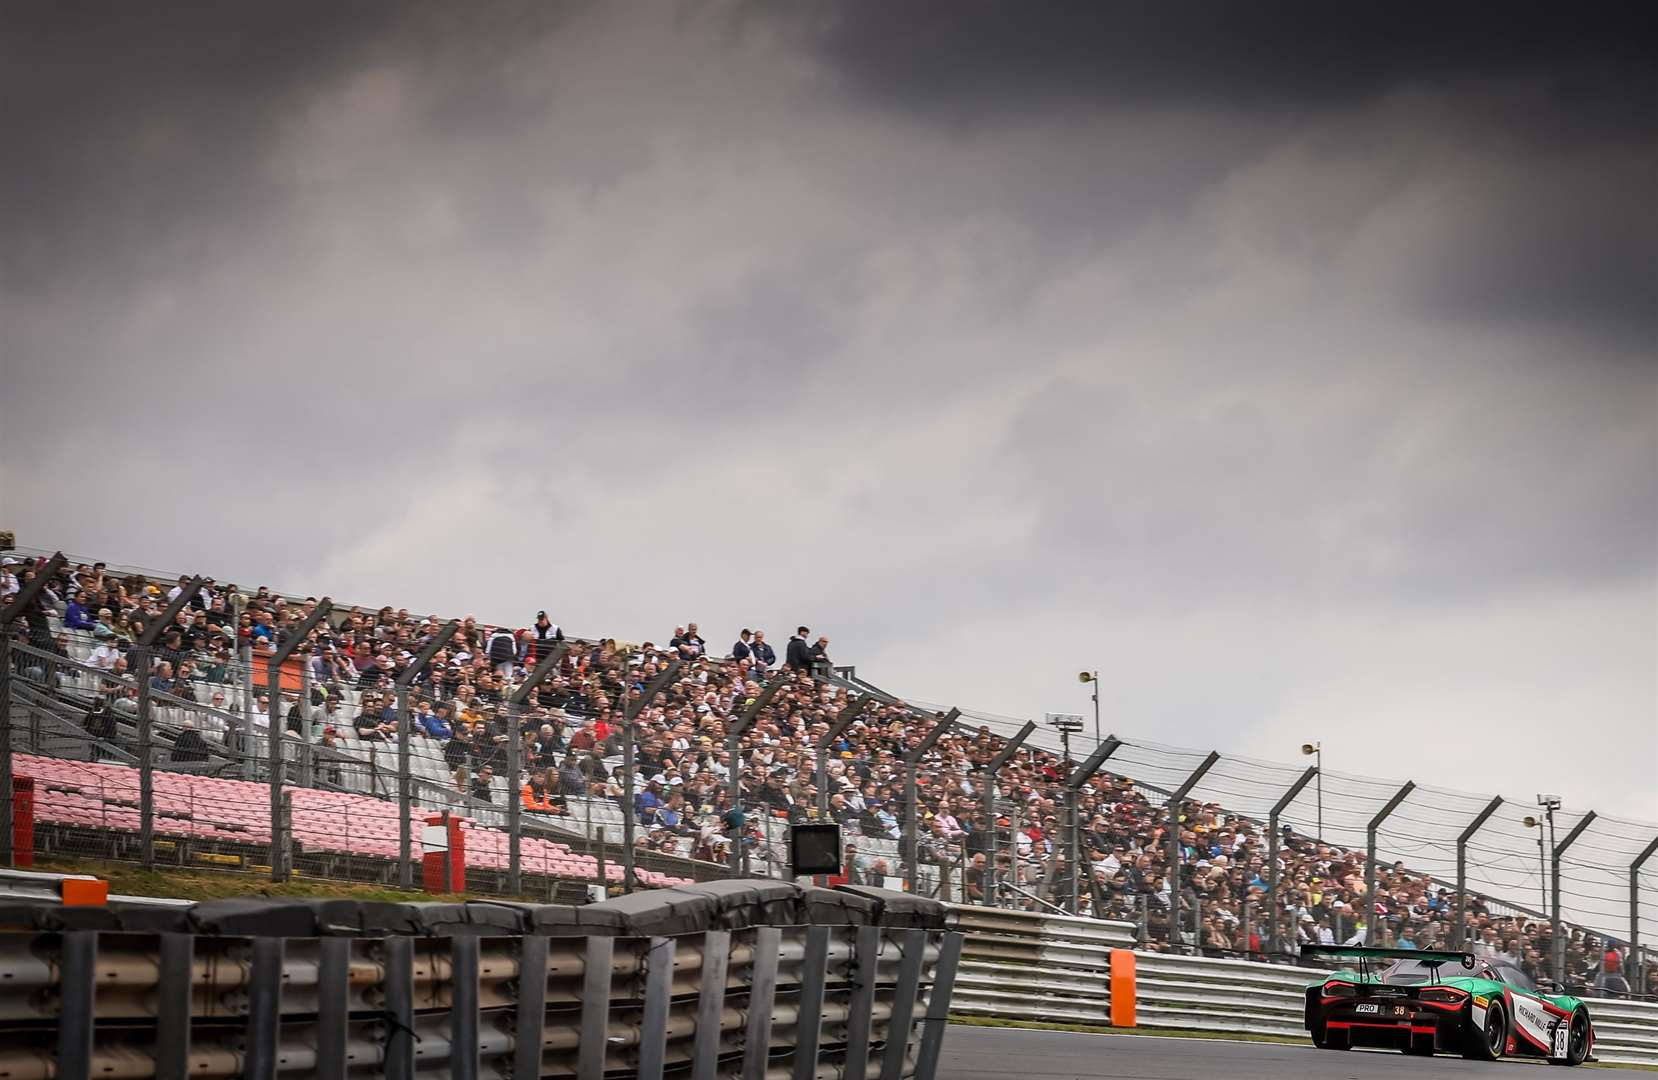 The GT World Challenge Europe Sprint Cup returned to Brands Hatch for the first time since May 2019. Picture: SRO